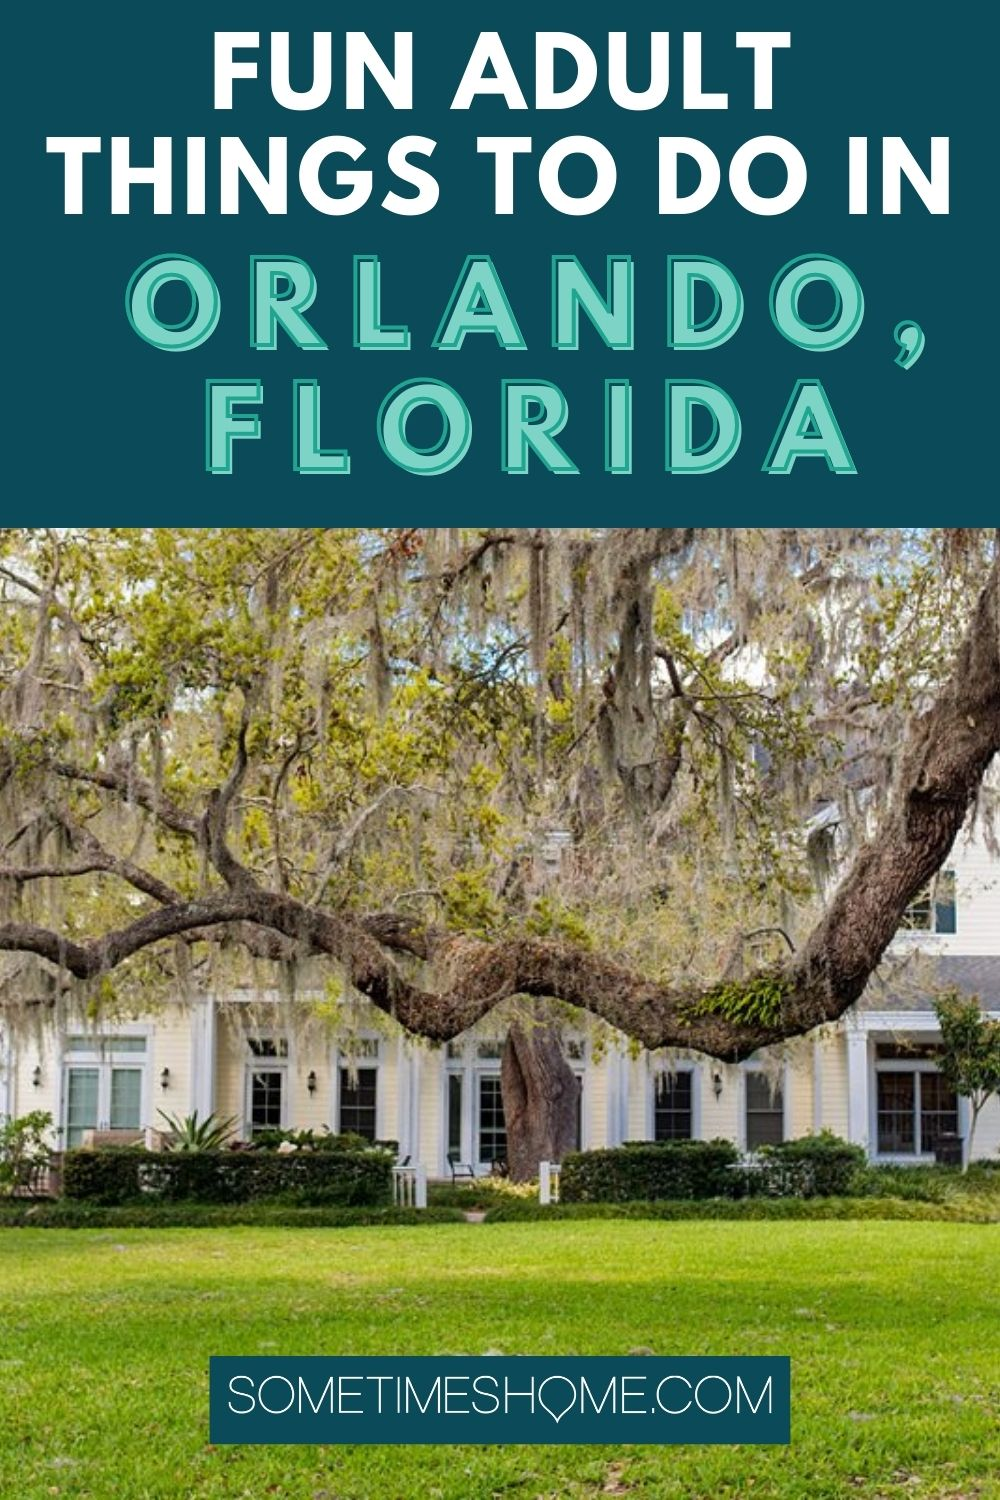 Fun adult things to do in Orlando, Florida with a photo of a tree and building behind it at Leu Gardens.